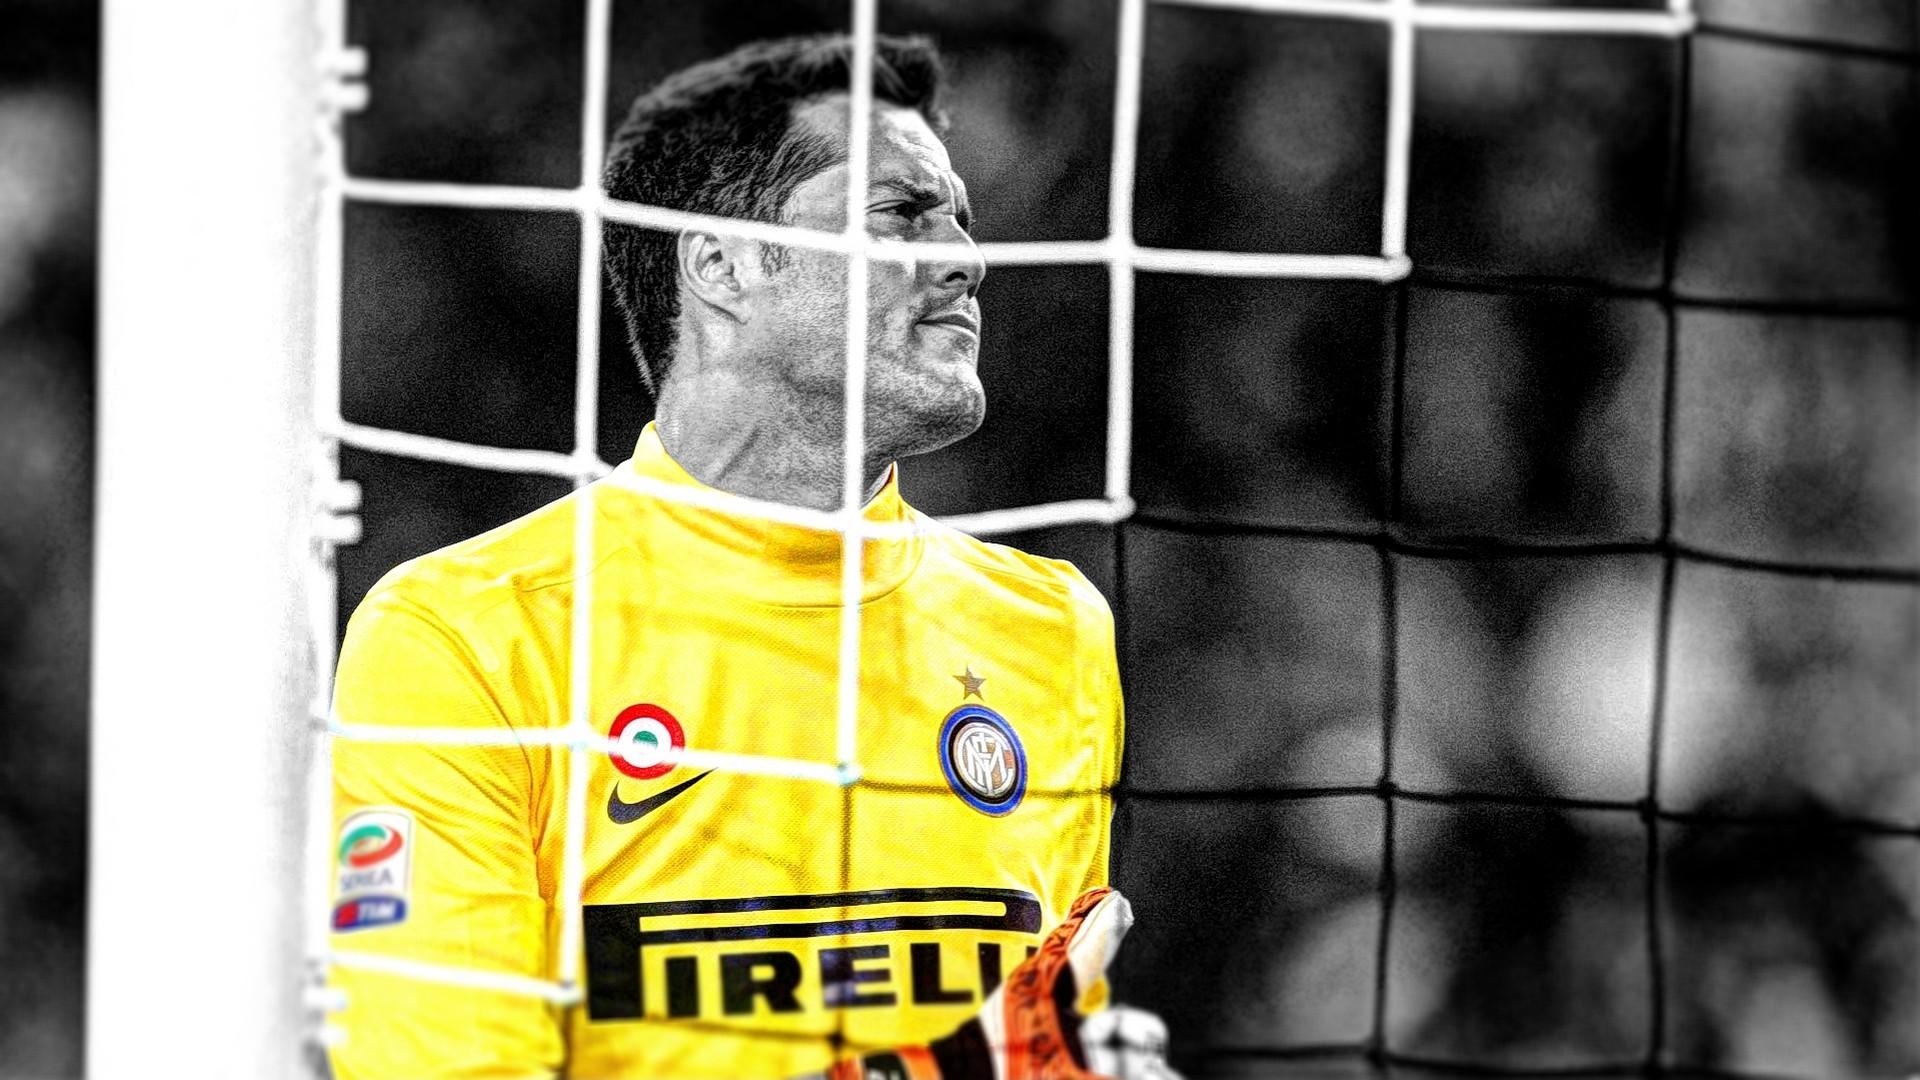 Soccer F_C_ Internazionale Milano HDR photography ...